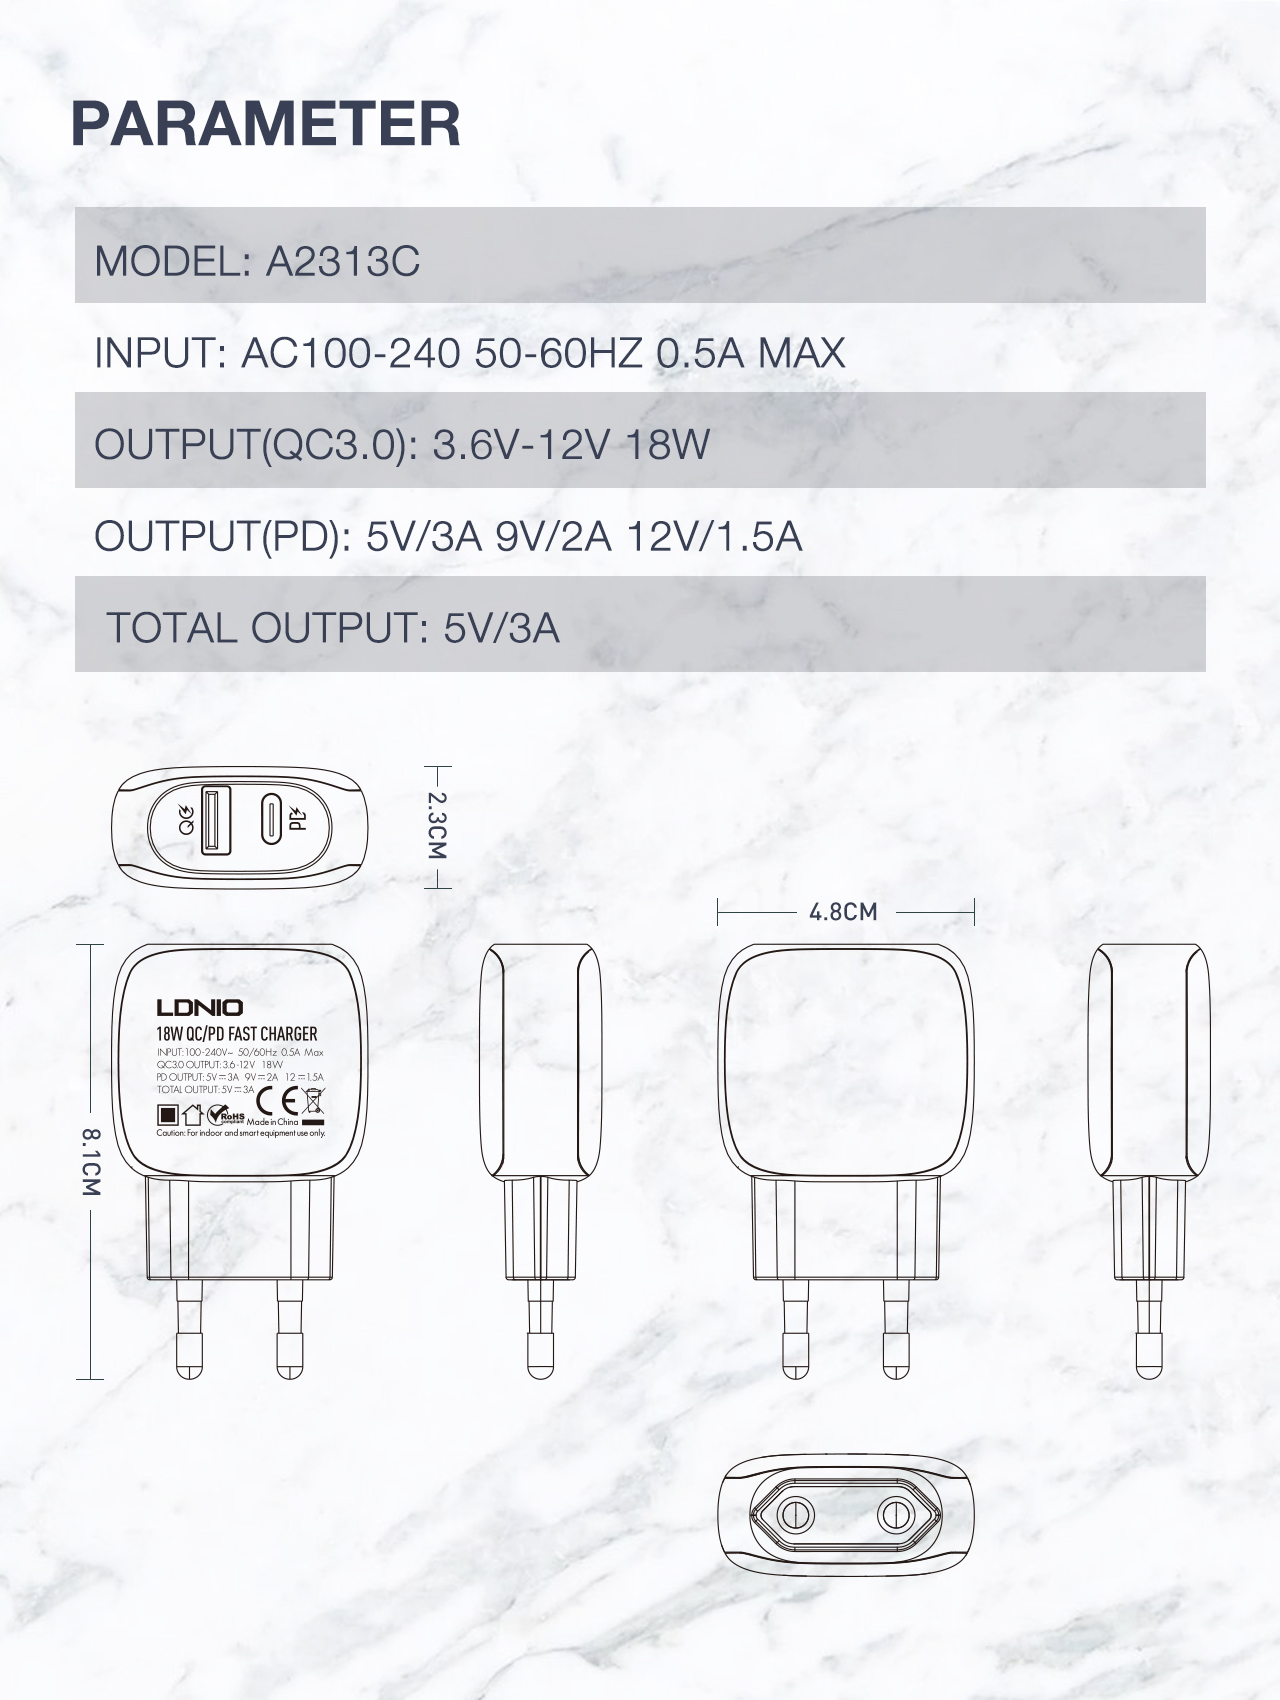 LDNIO A2313C Quick Charging Type-C PD And QC3.0 Dual USB Ports Charger With Power Of 18W